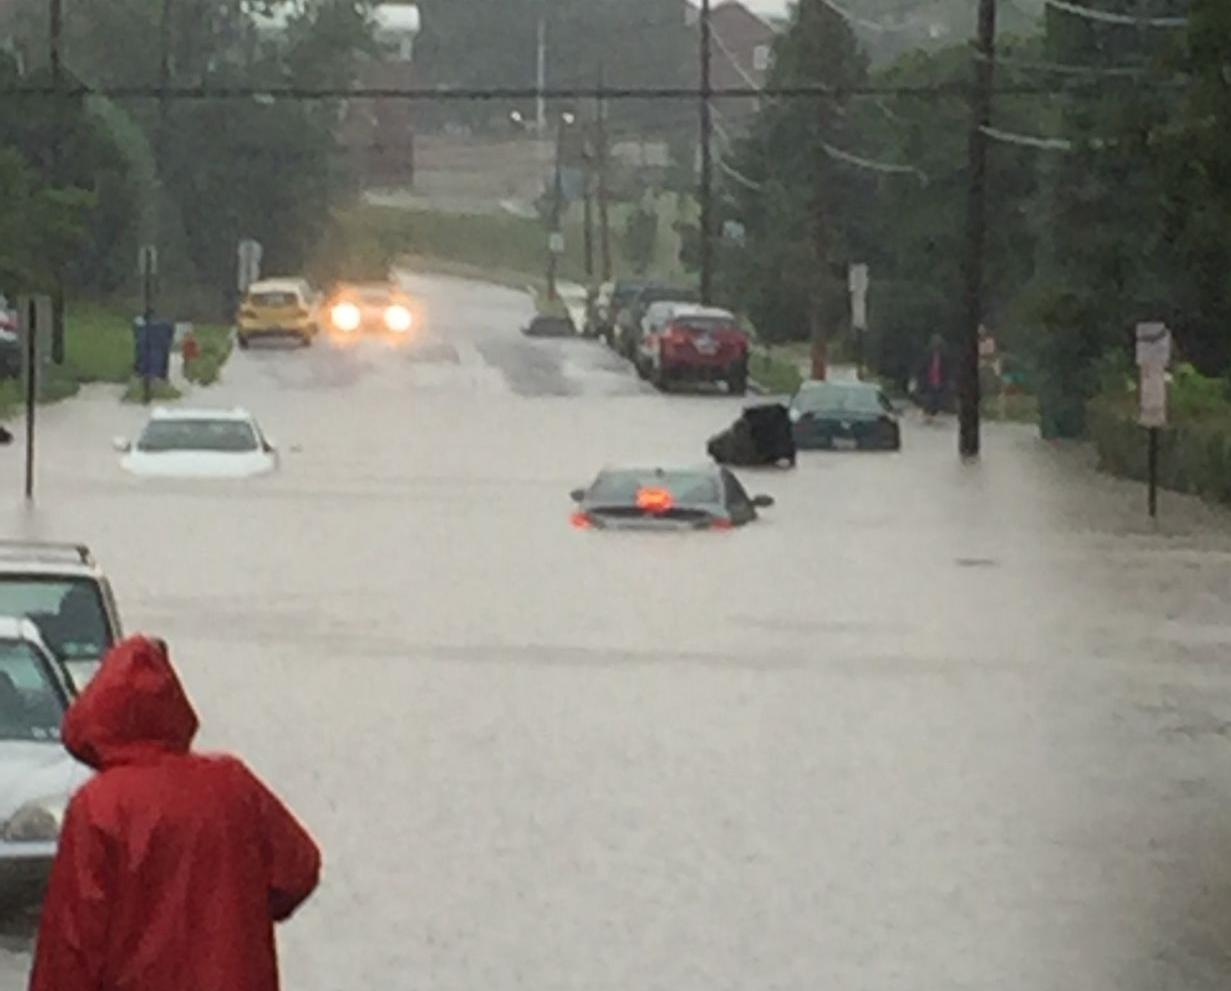 Torrential downpours: See photos of major flooding in parts of Lancaster County | Local News ...